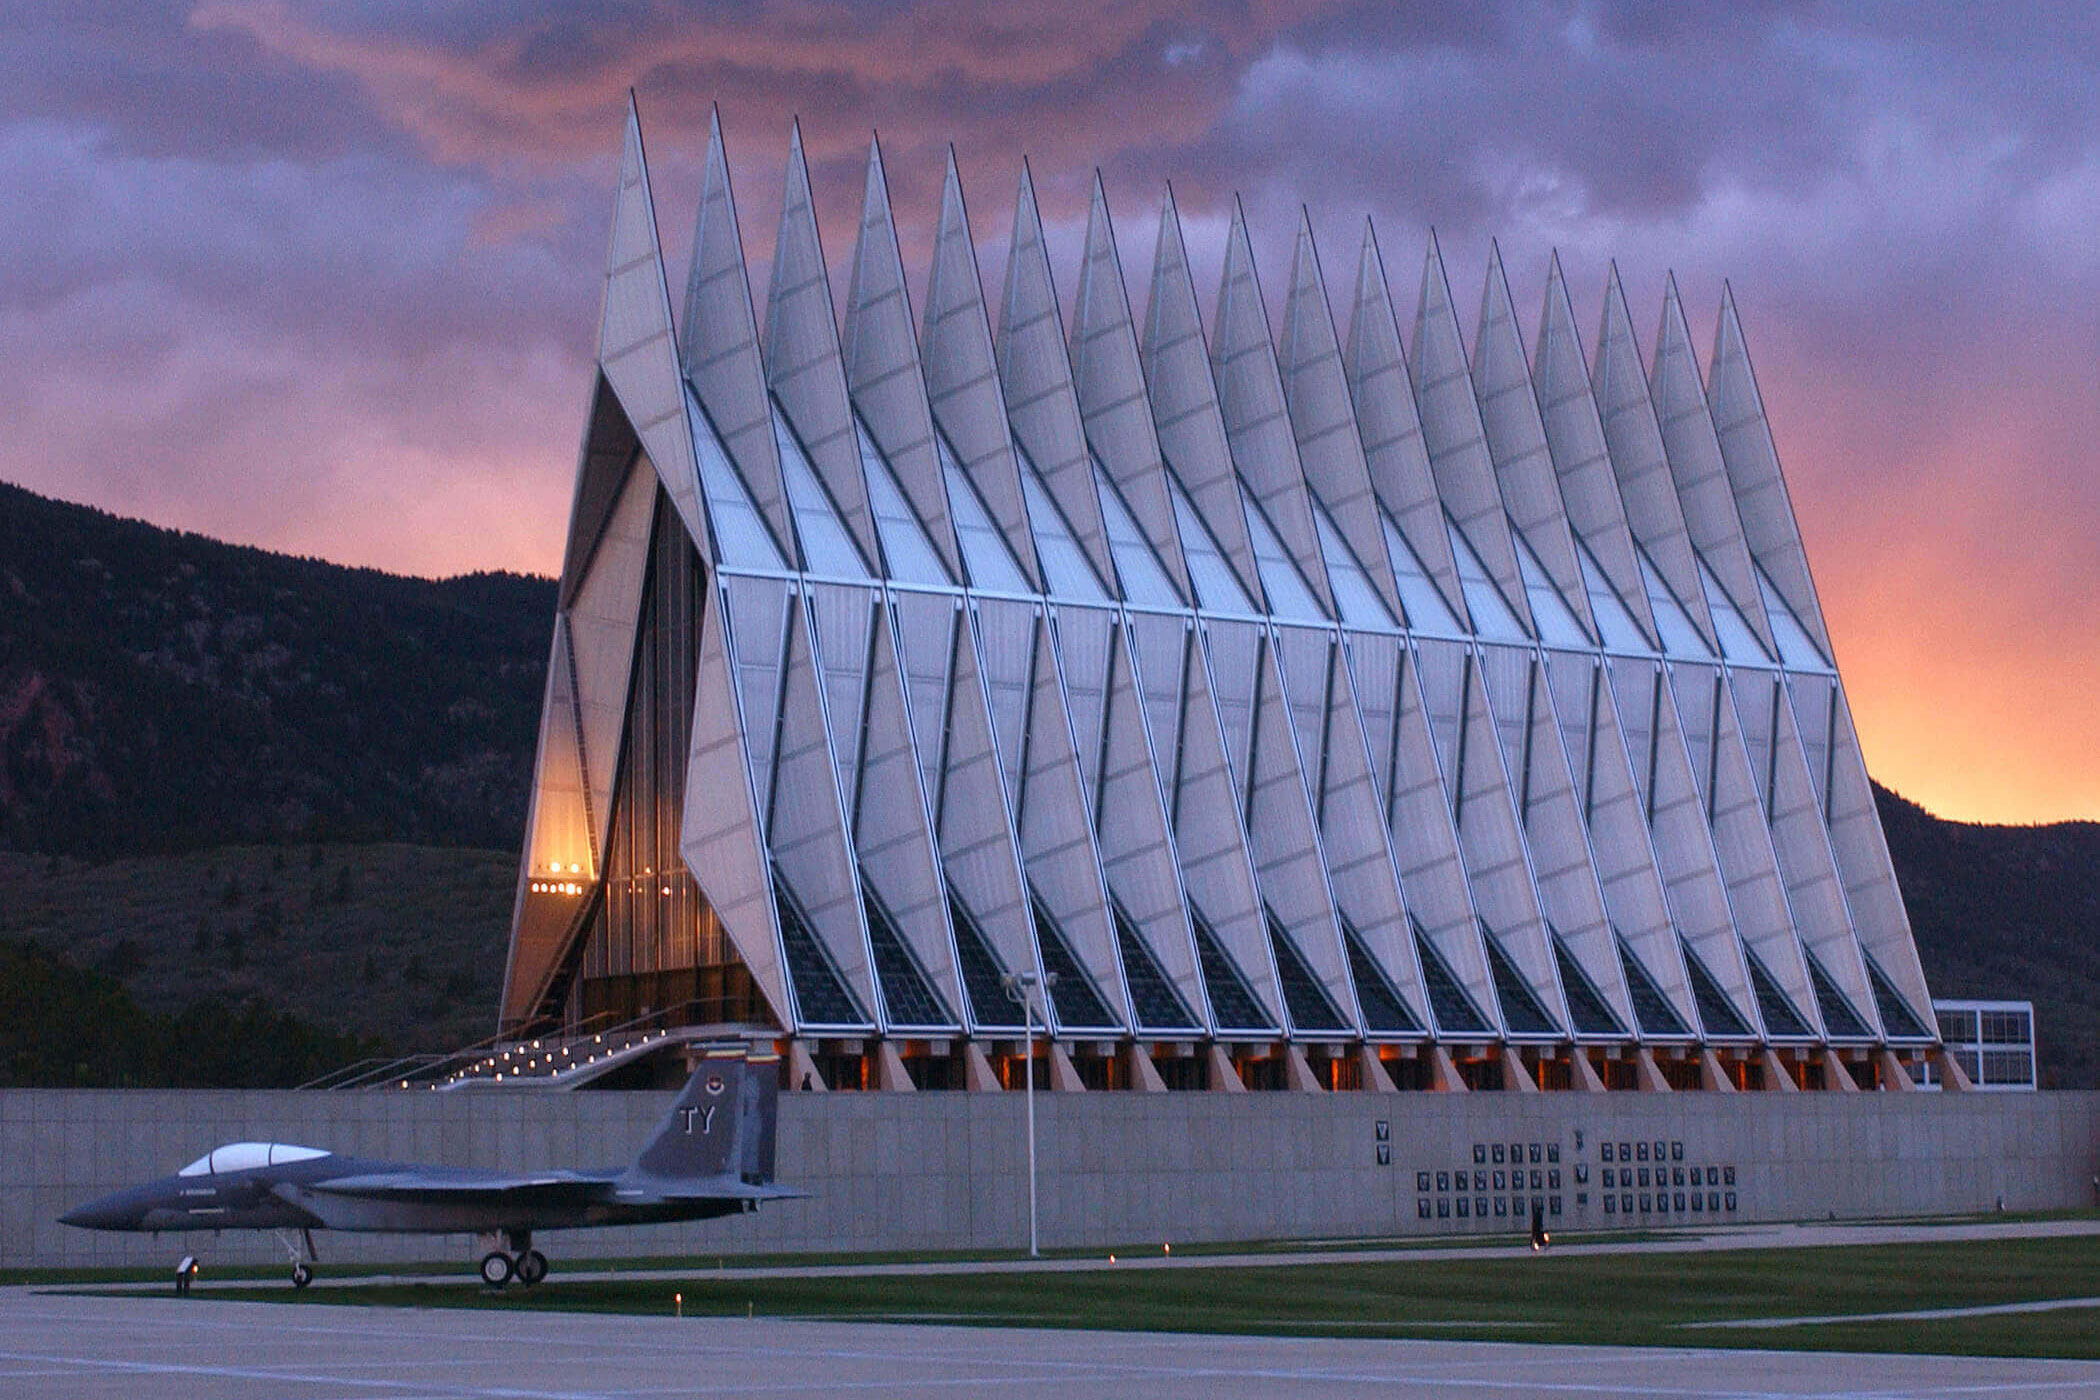 Photo: Air Force Academy Cadet Chapel - Courtesy